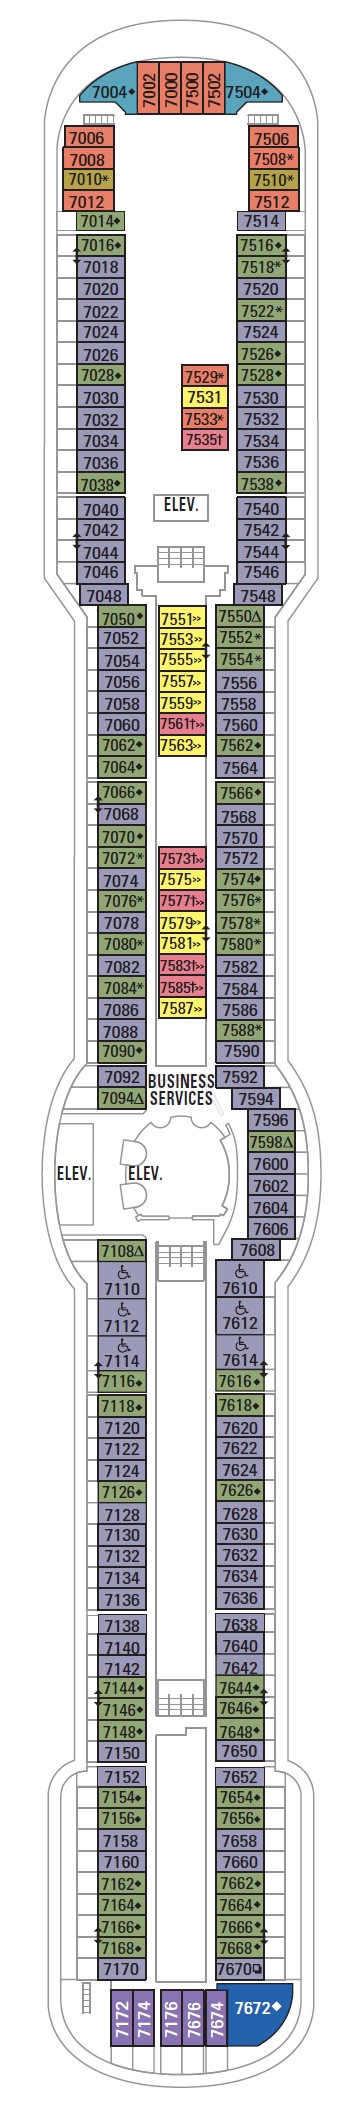 Radiance Of The Seas Deck 7 layout